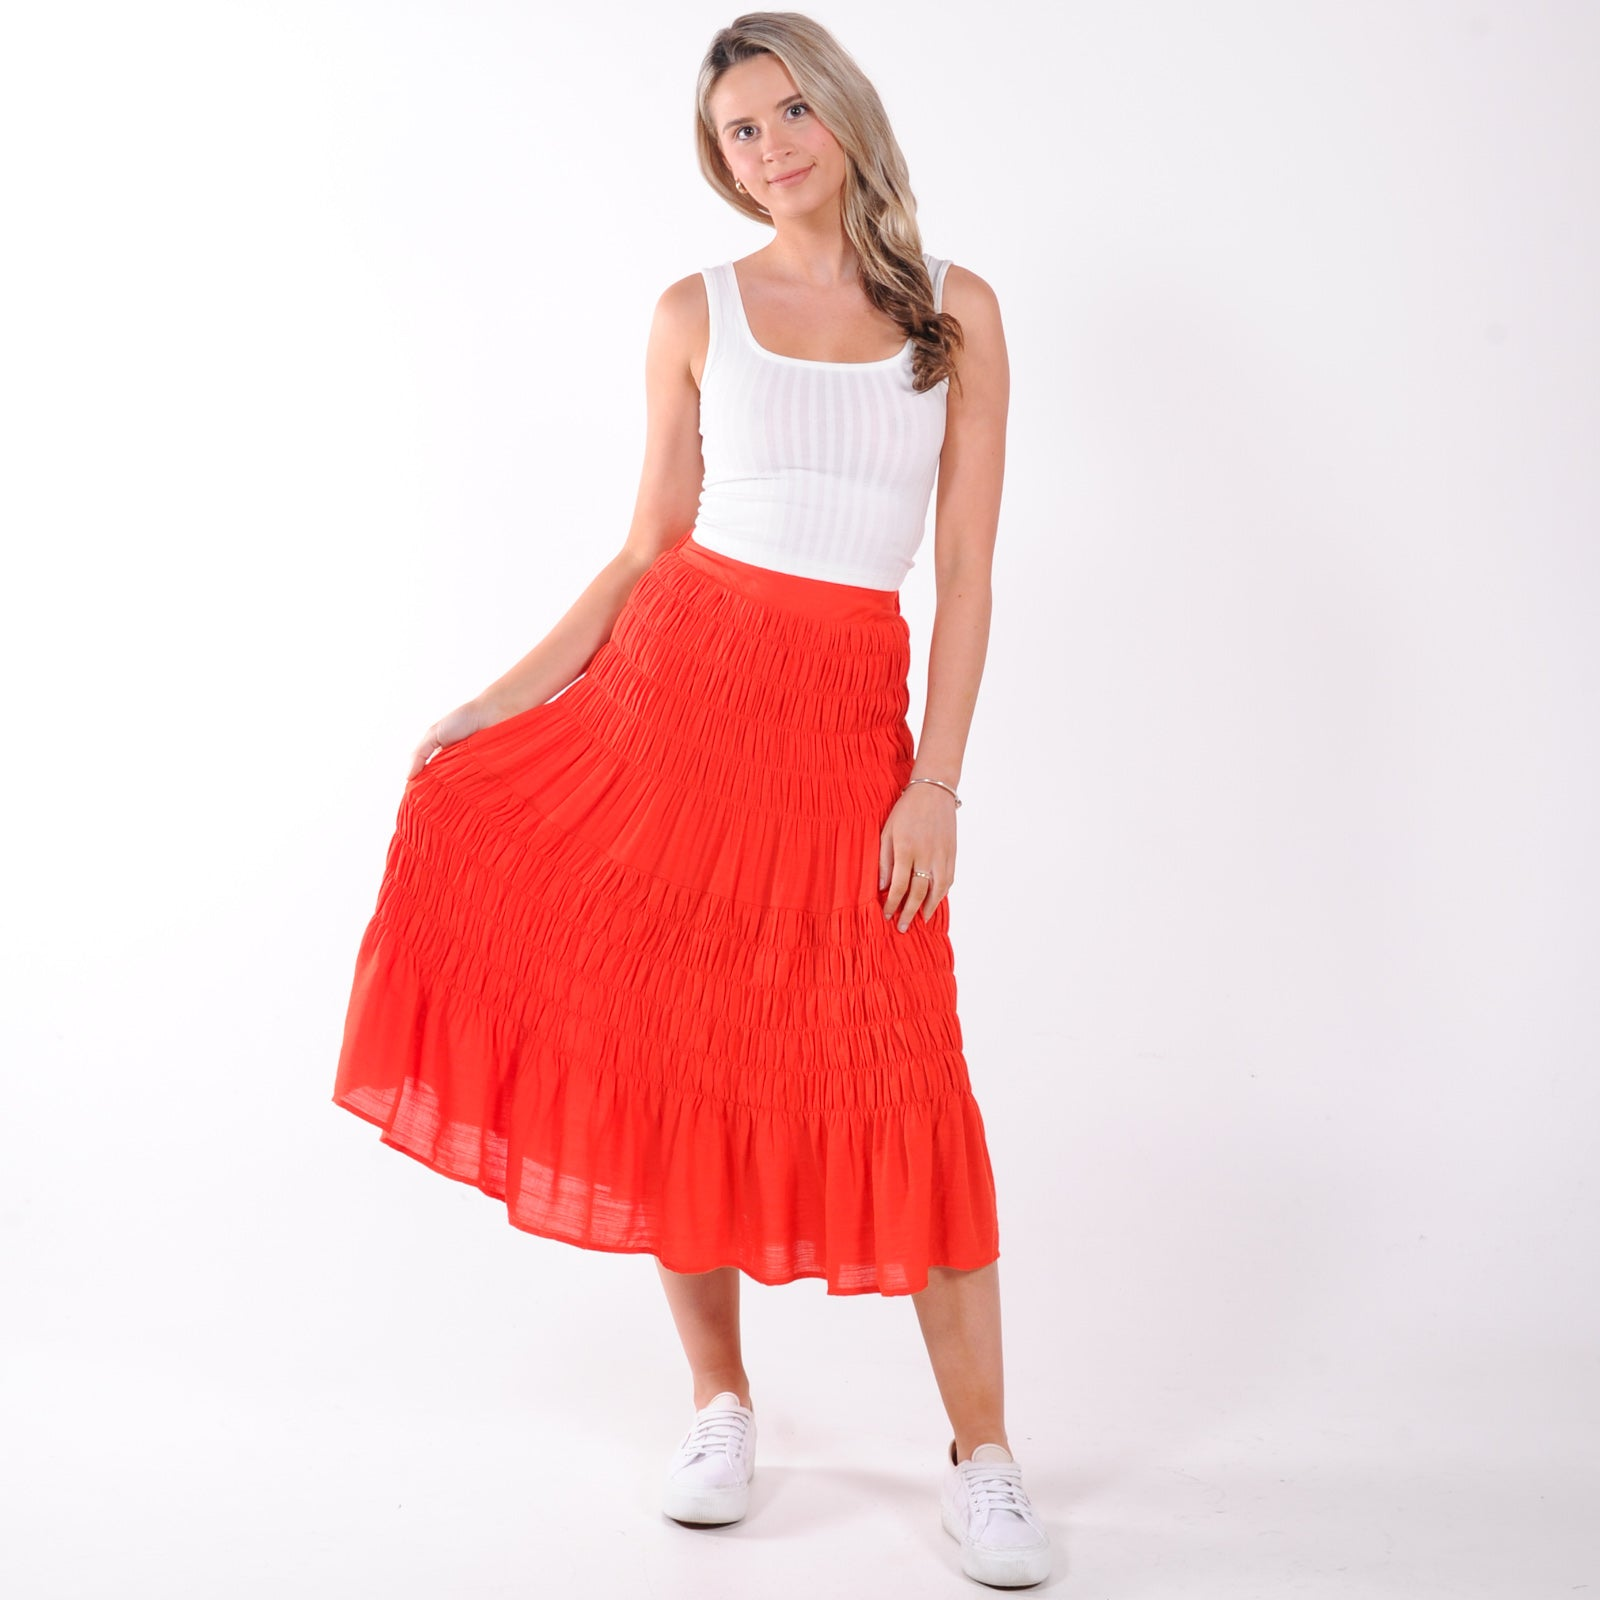 Summer Feeling Midi Skirt - Rust